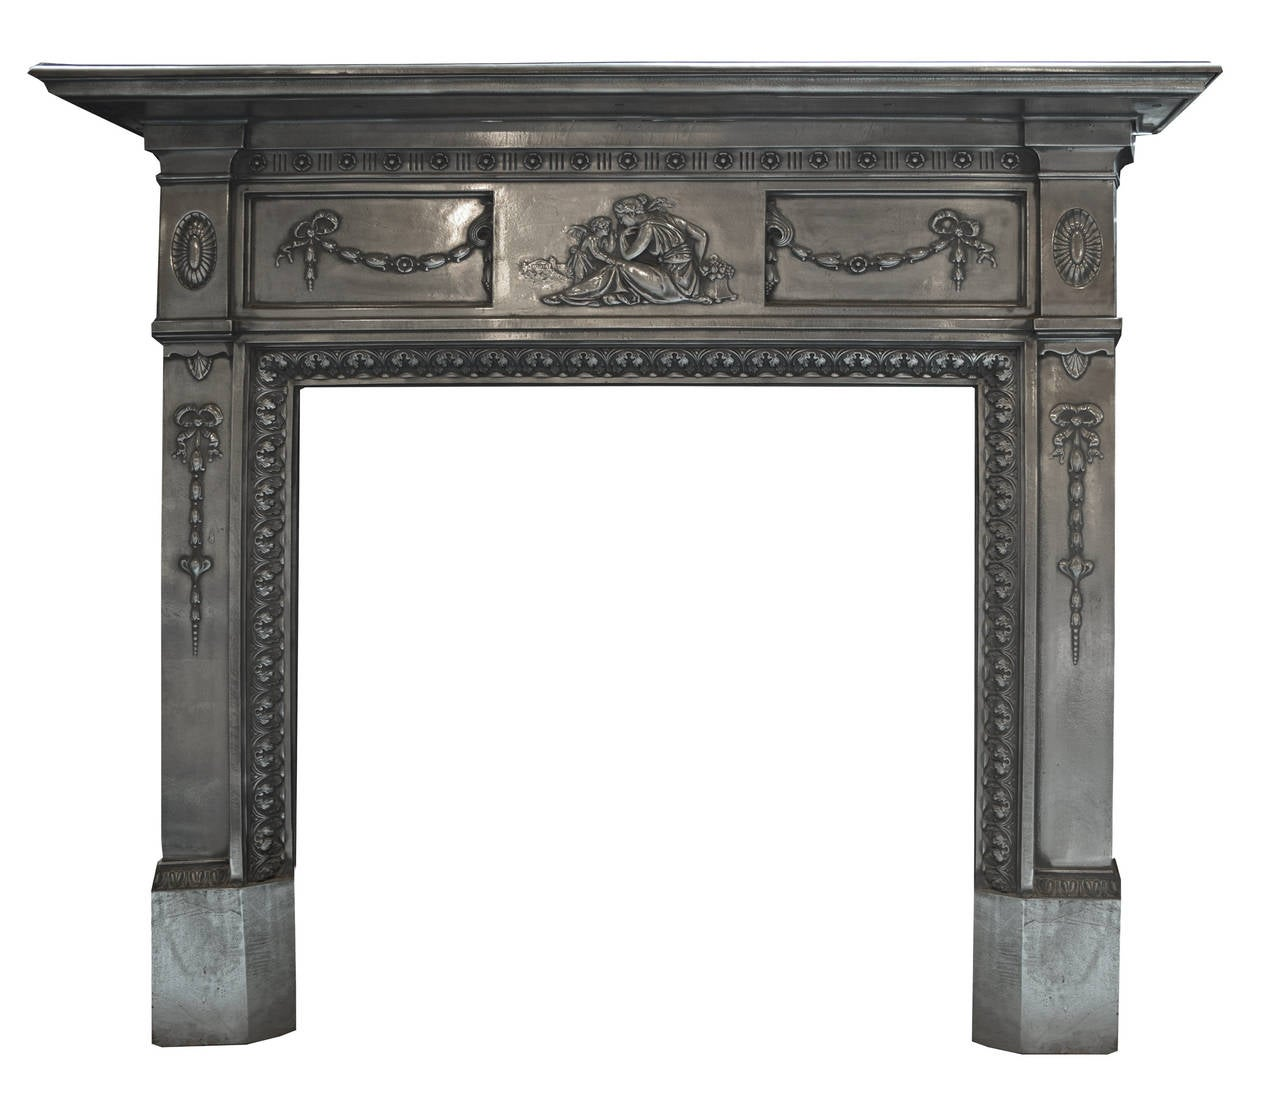 19th Century Cast Iron Mantel For Sale At 1stdibs